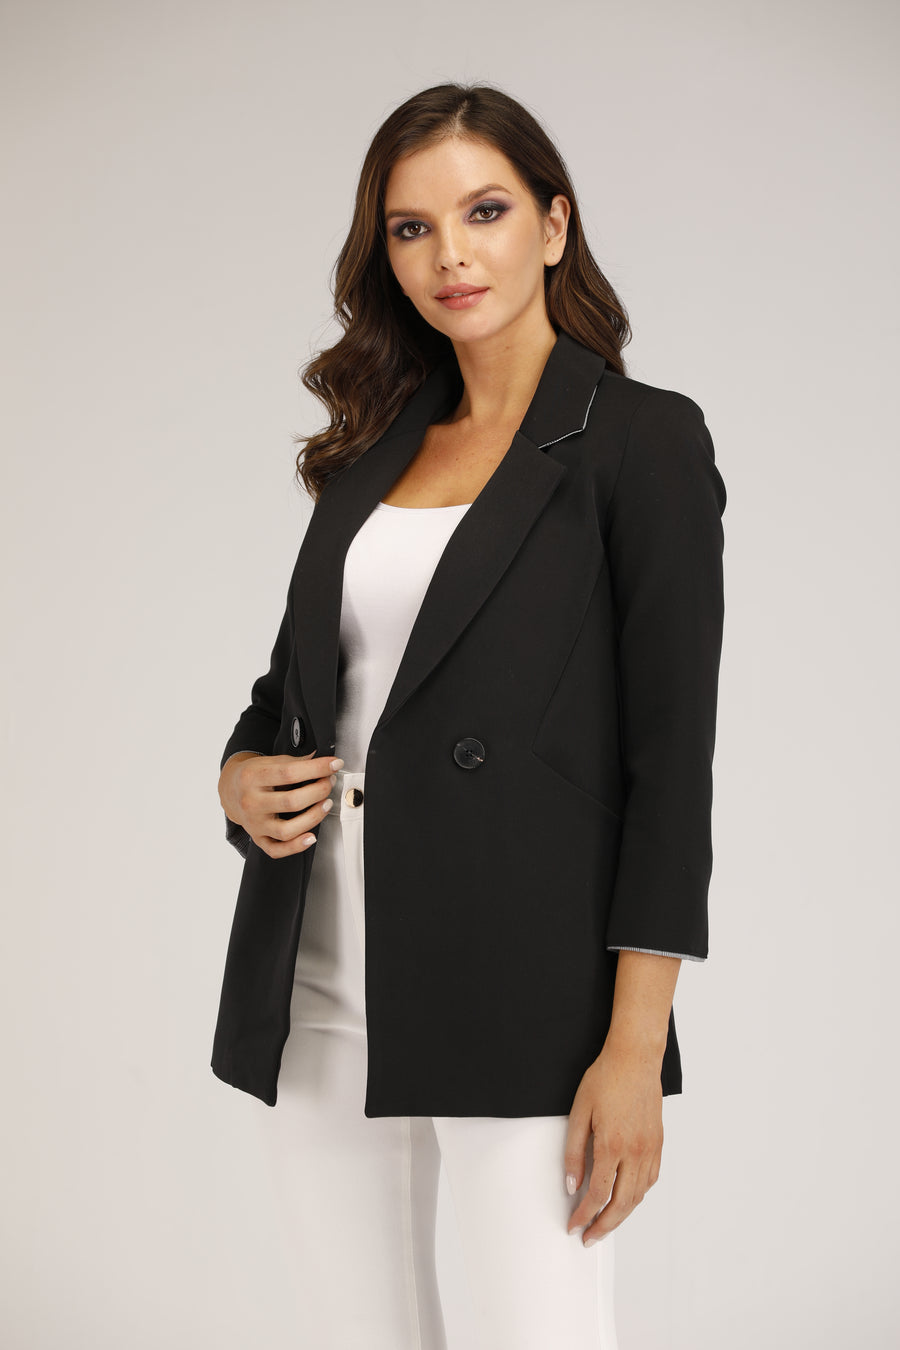 Mantra Pakistan Black Blazer with Ribbon | OUTERWEAR